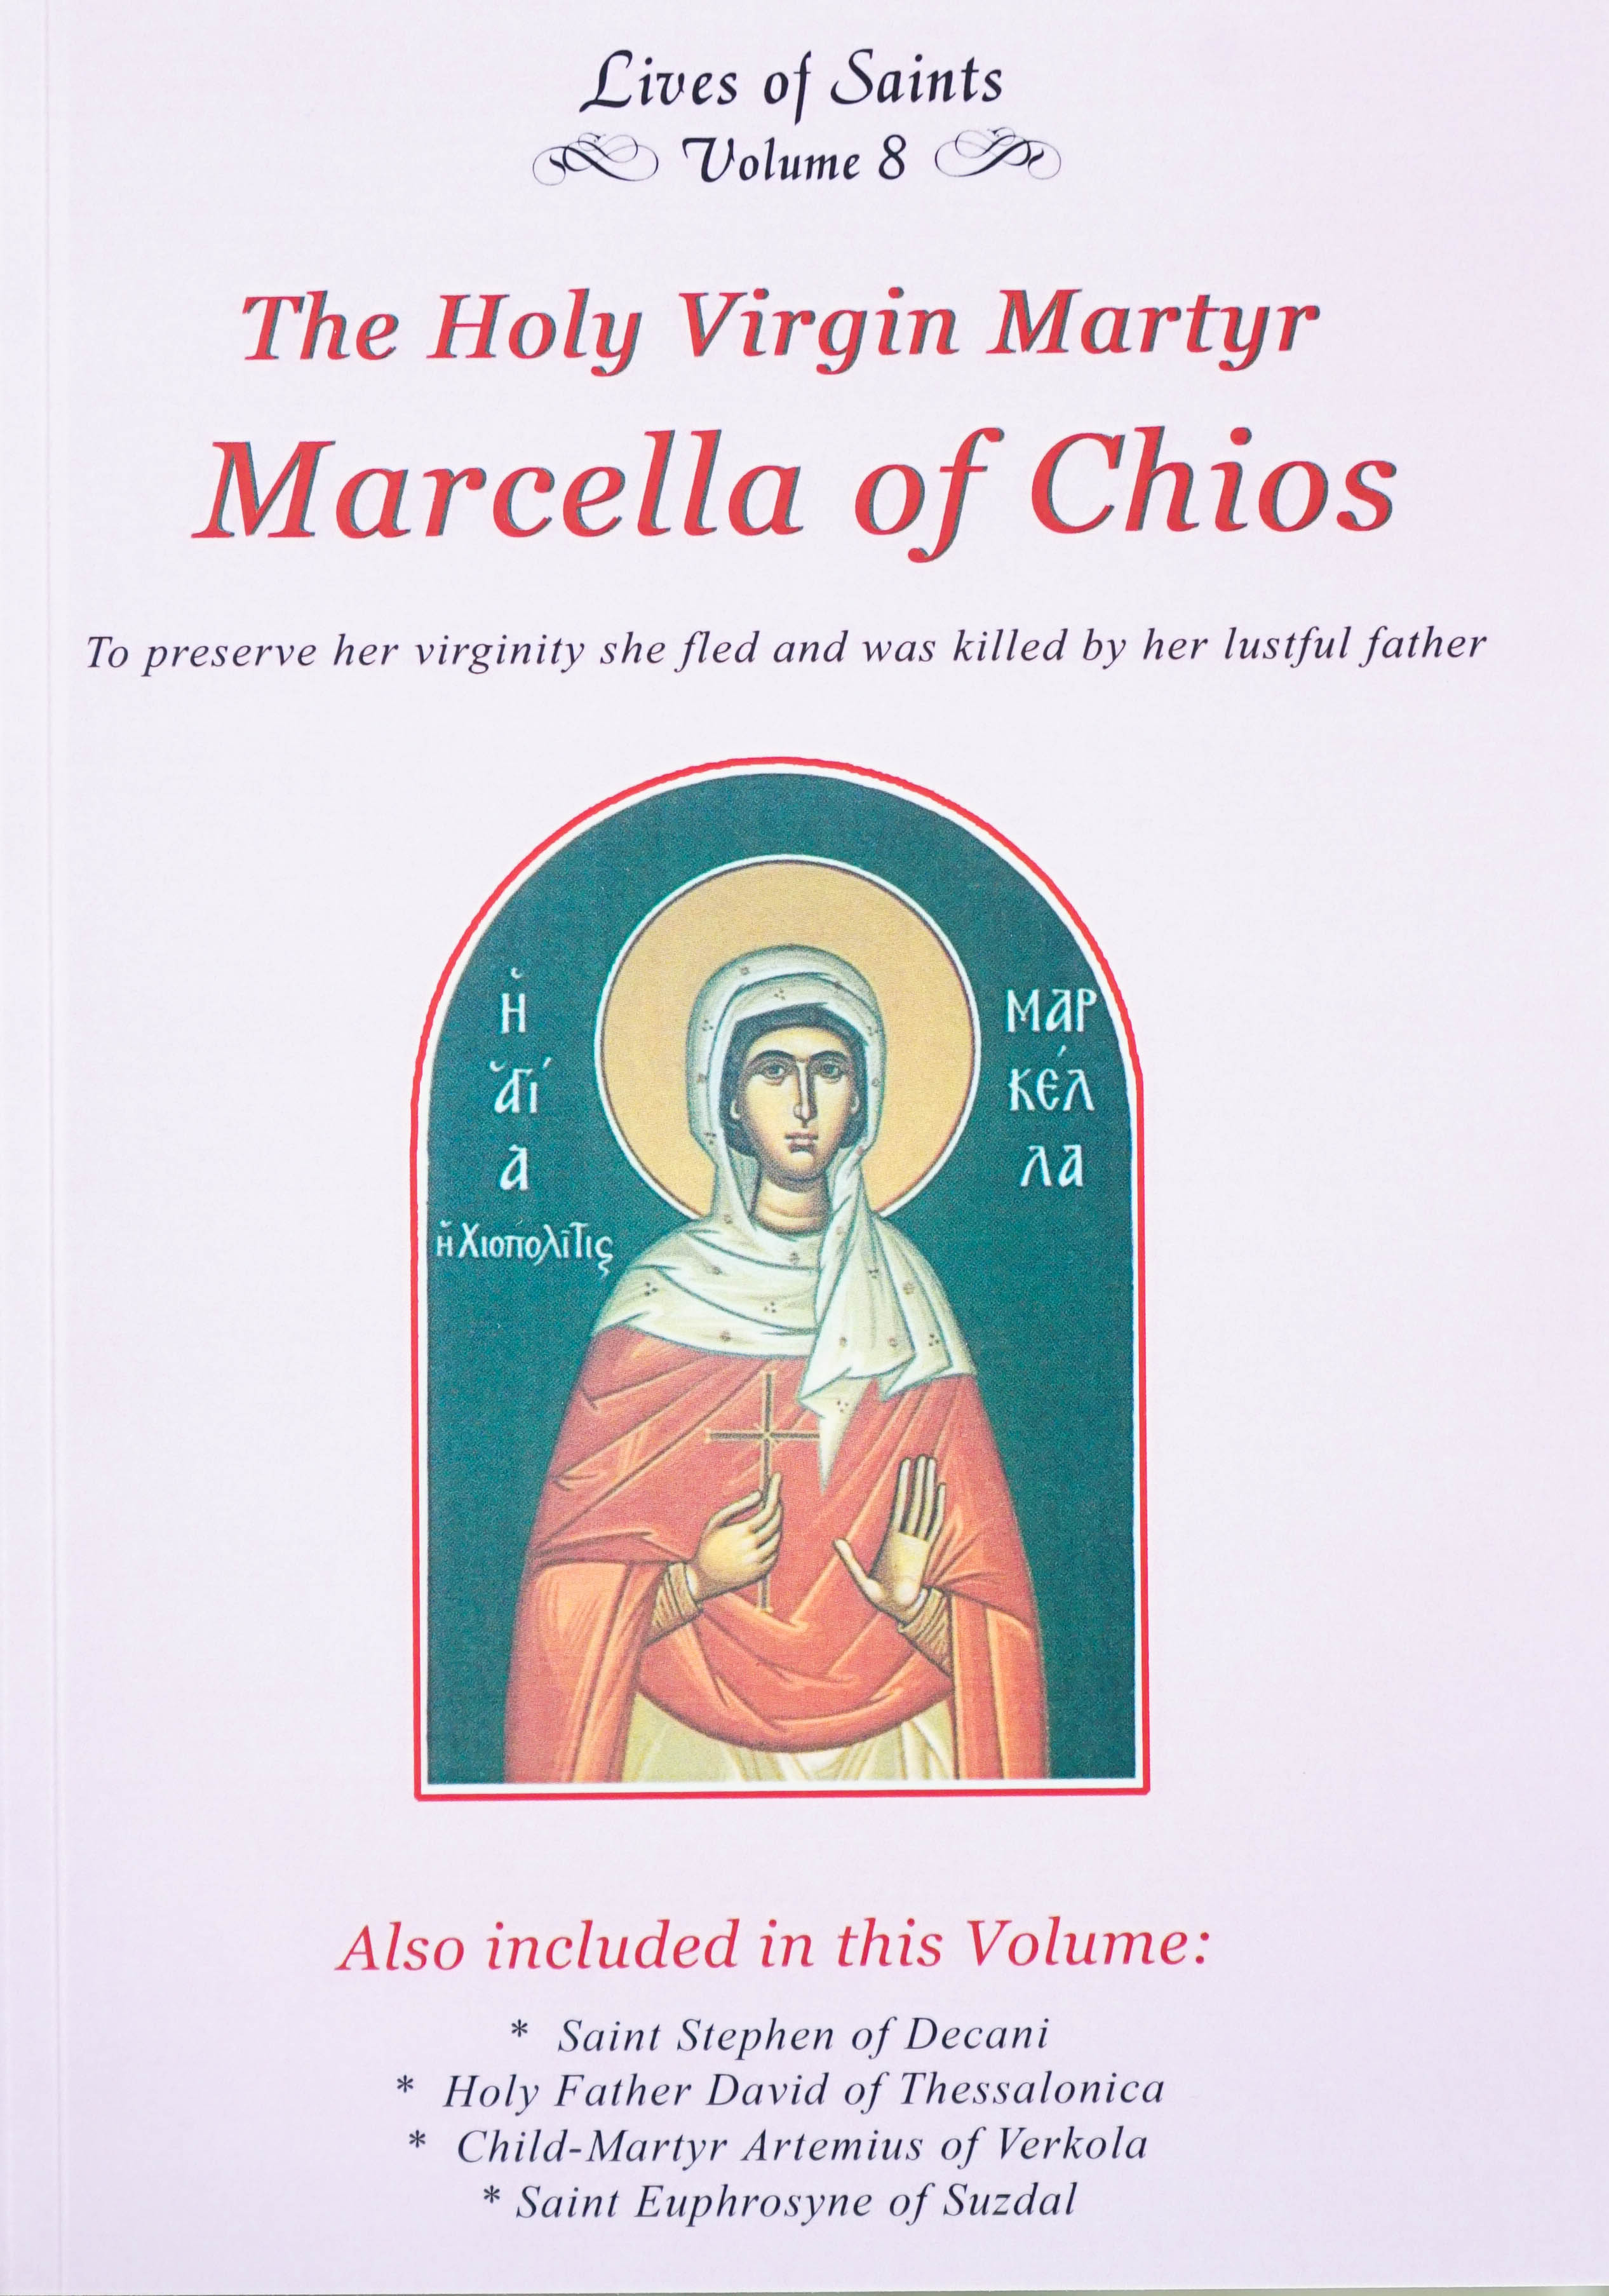 Lives of Saints Vol. 08: The Holy Virgin Martyr Marcella of Chios